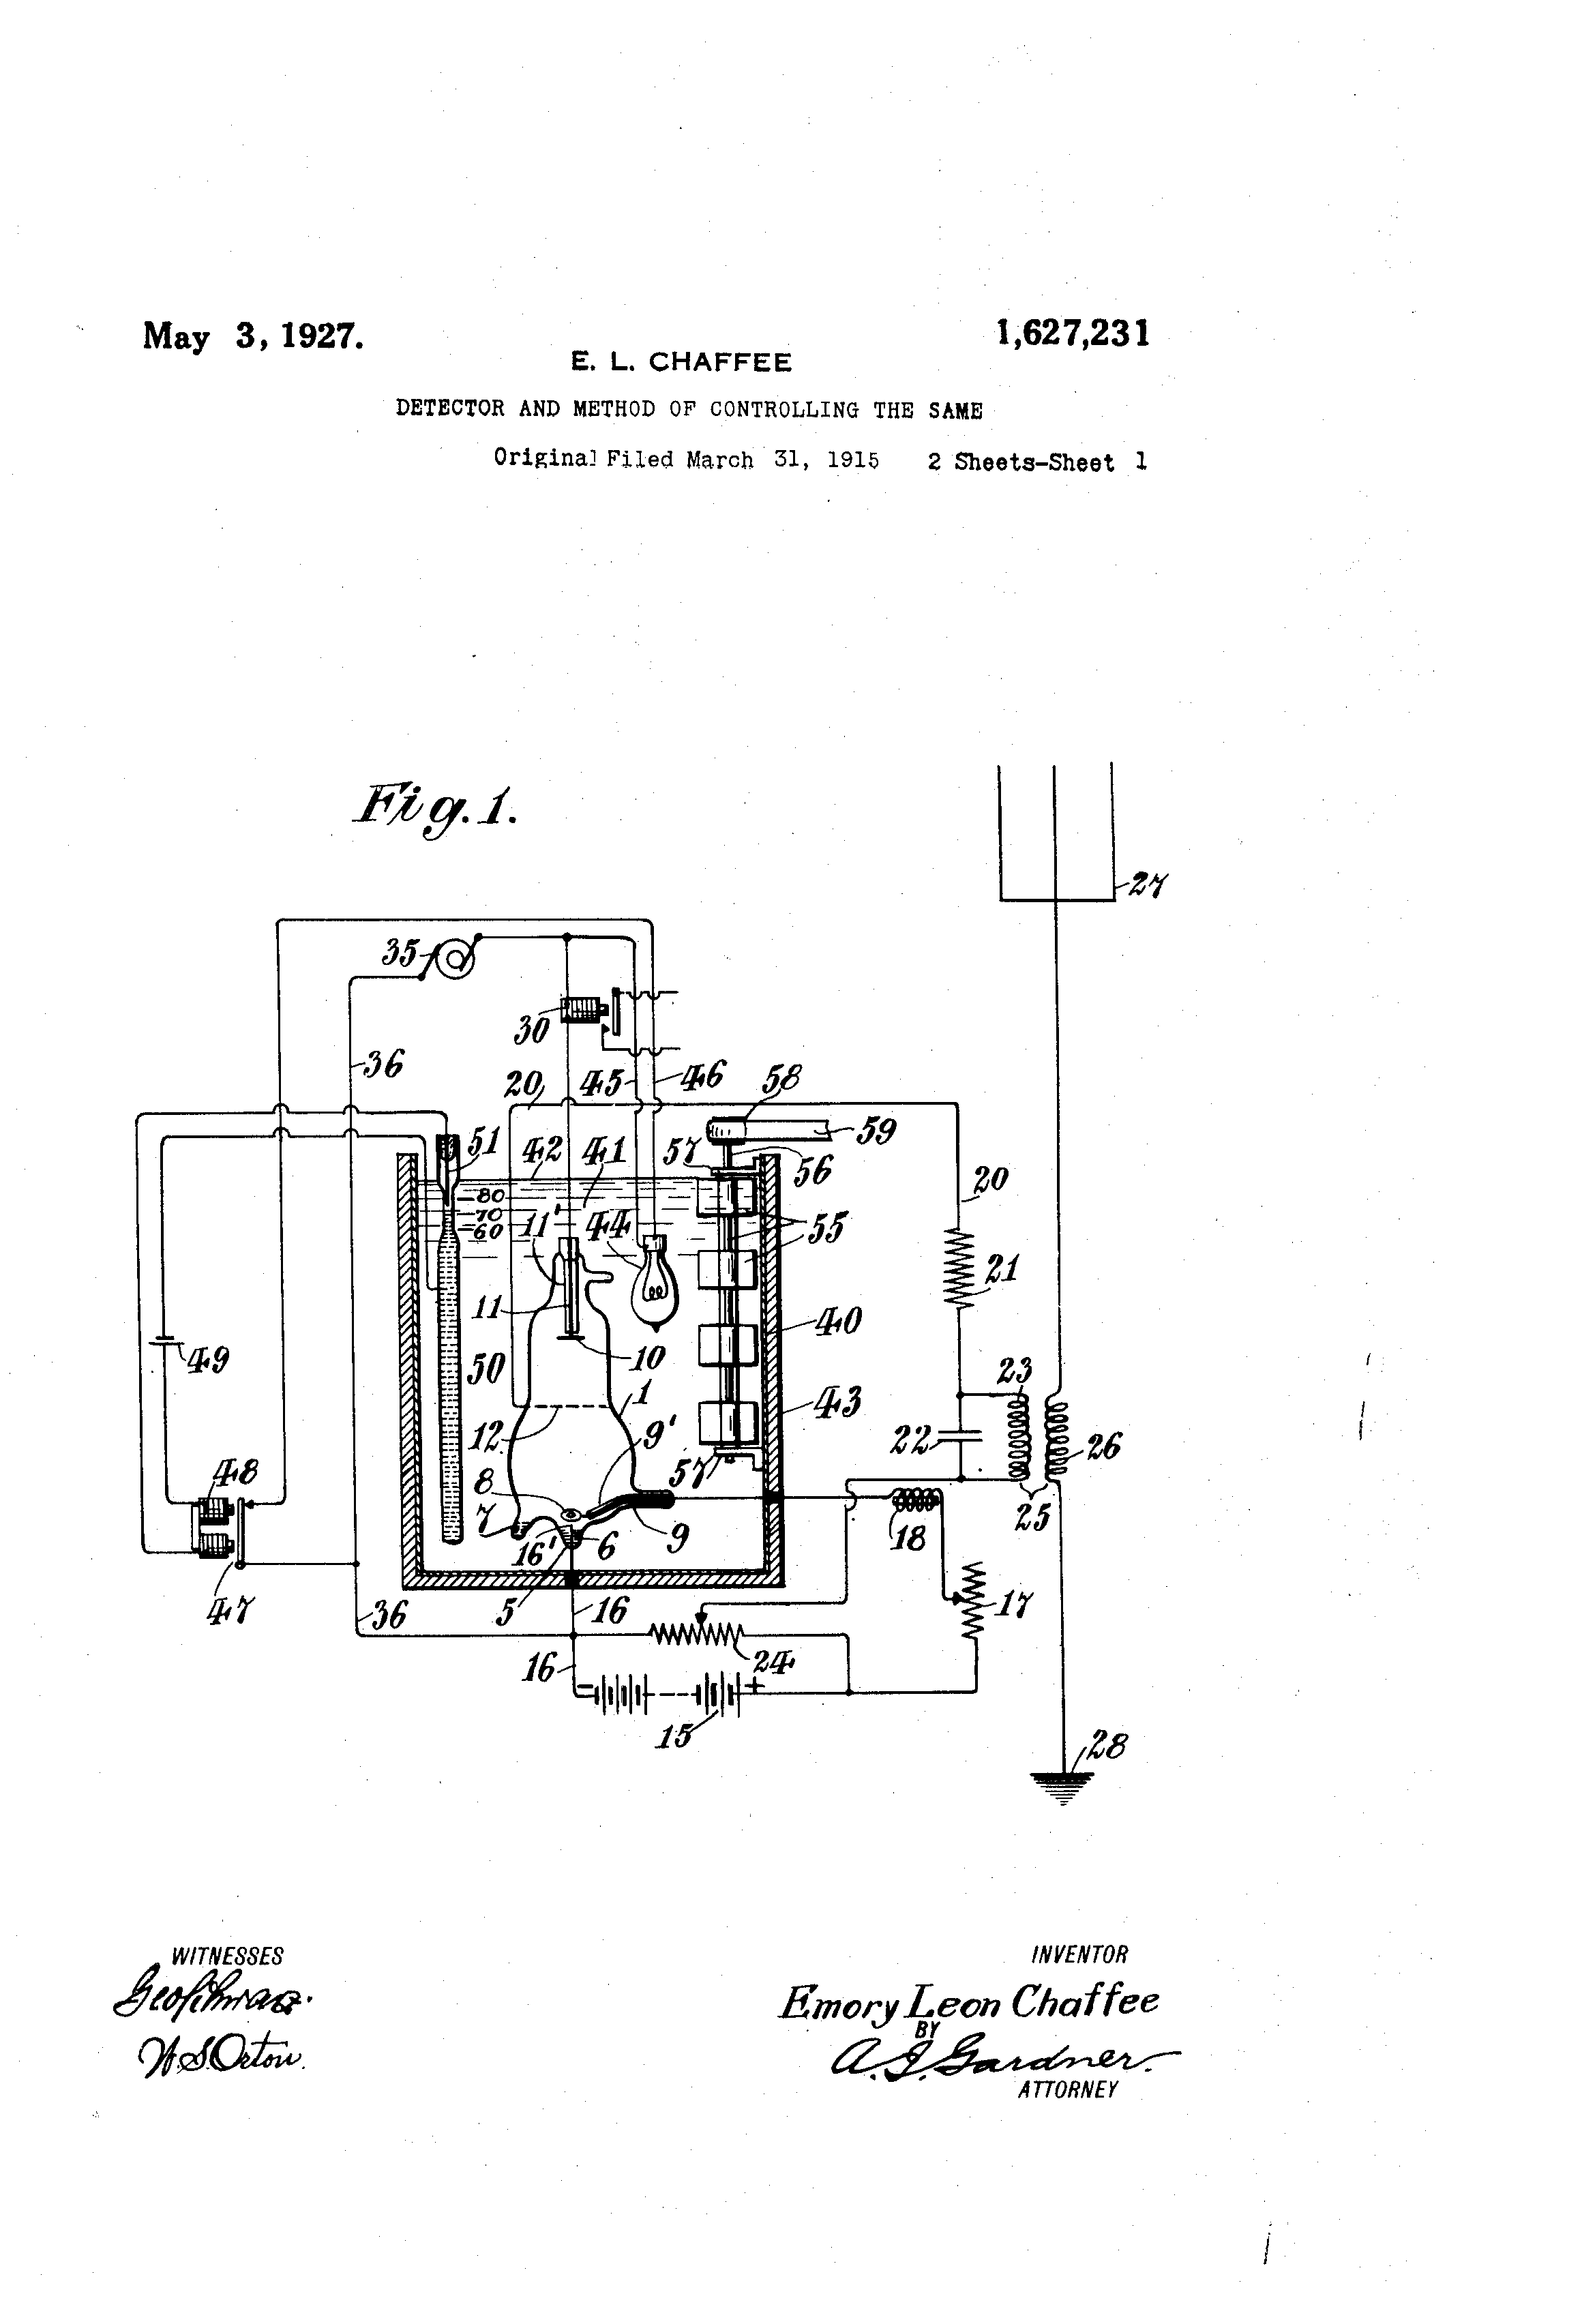 Patent US1627231 - Detector and method of controlling the same - May 3, 1927